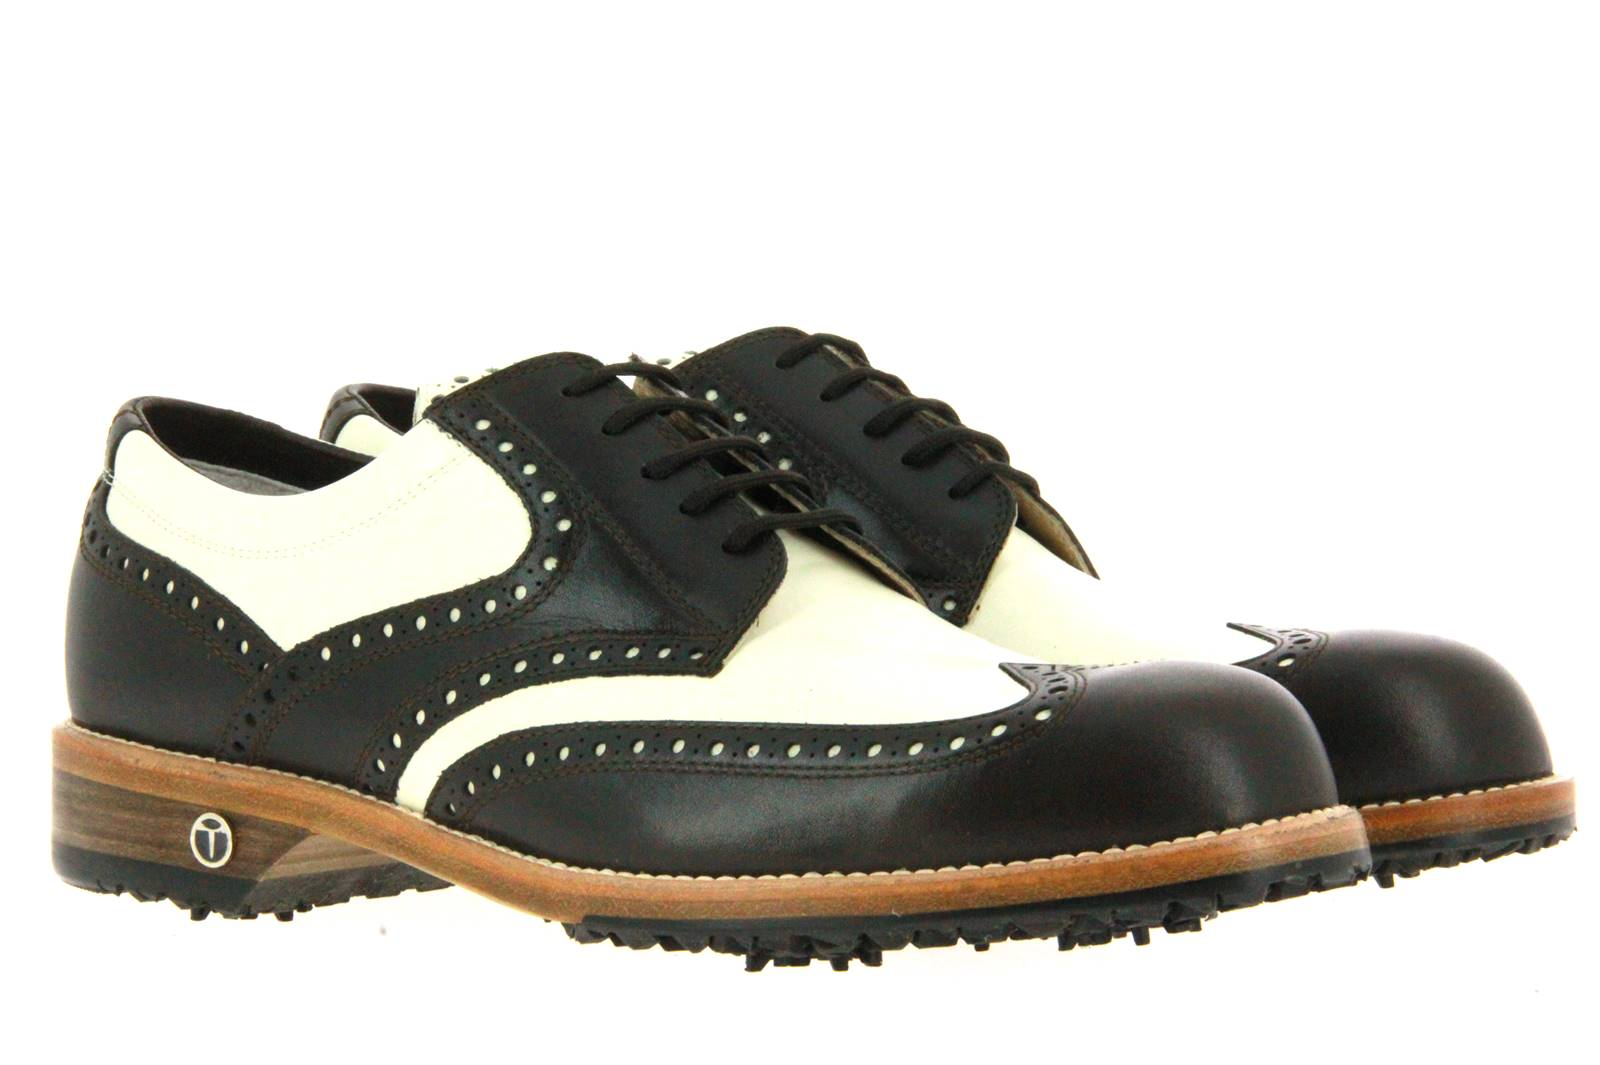 Tee Golf Shoes men's golf shoe TOMMY CHOCOLATE PICCIONE